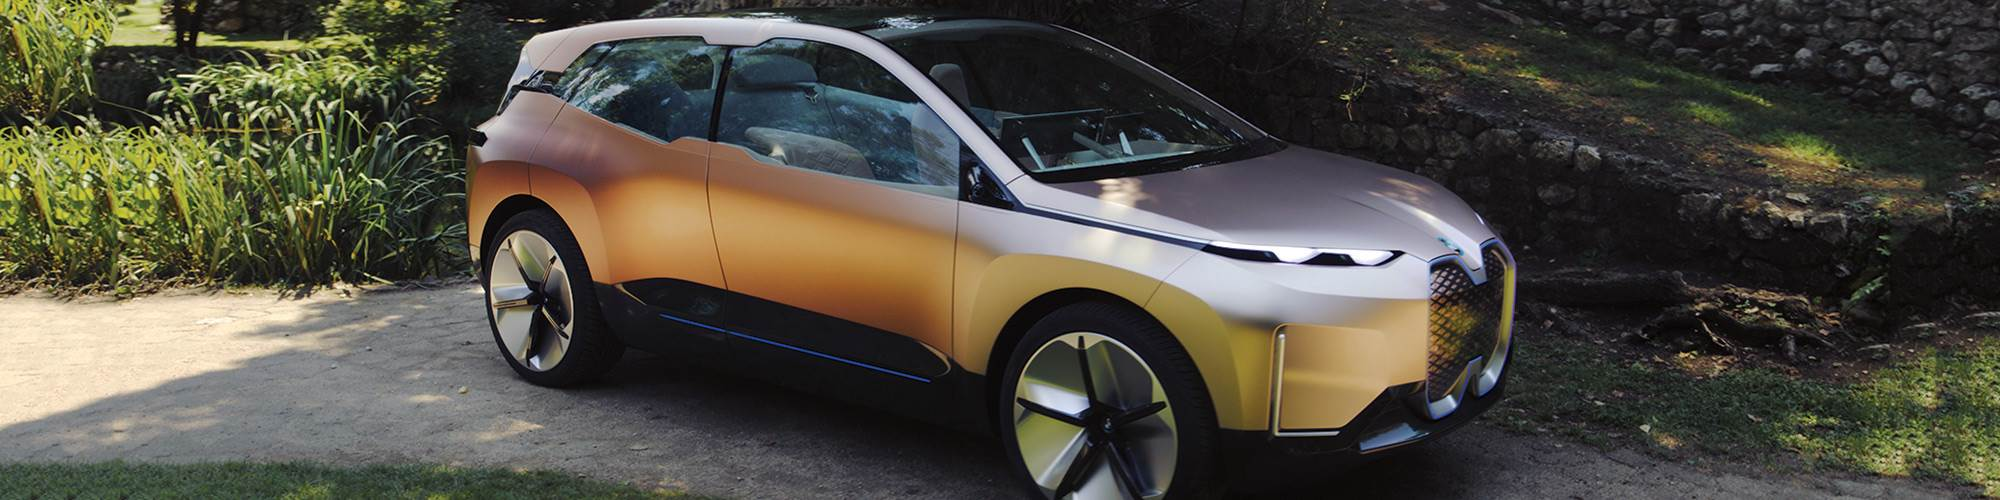 The BMW Vision iNEXT Concept. The real-thing—a Level 3-capable electric vehicle—is coming in 2021.